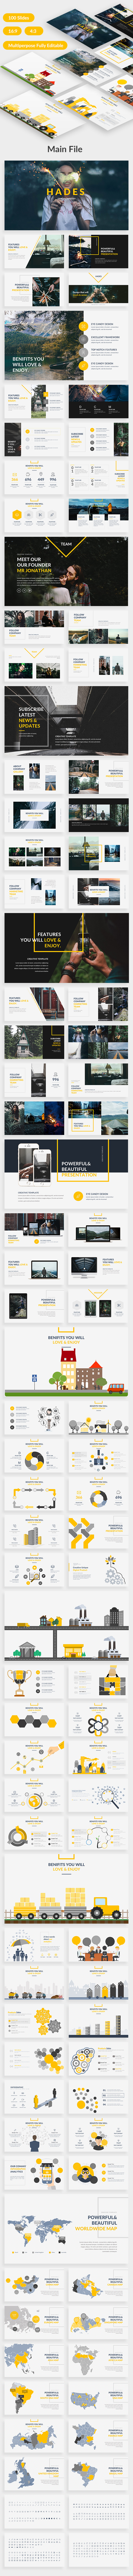 Hades Creative Powerpoint Template - Creative PowerPoint Templates